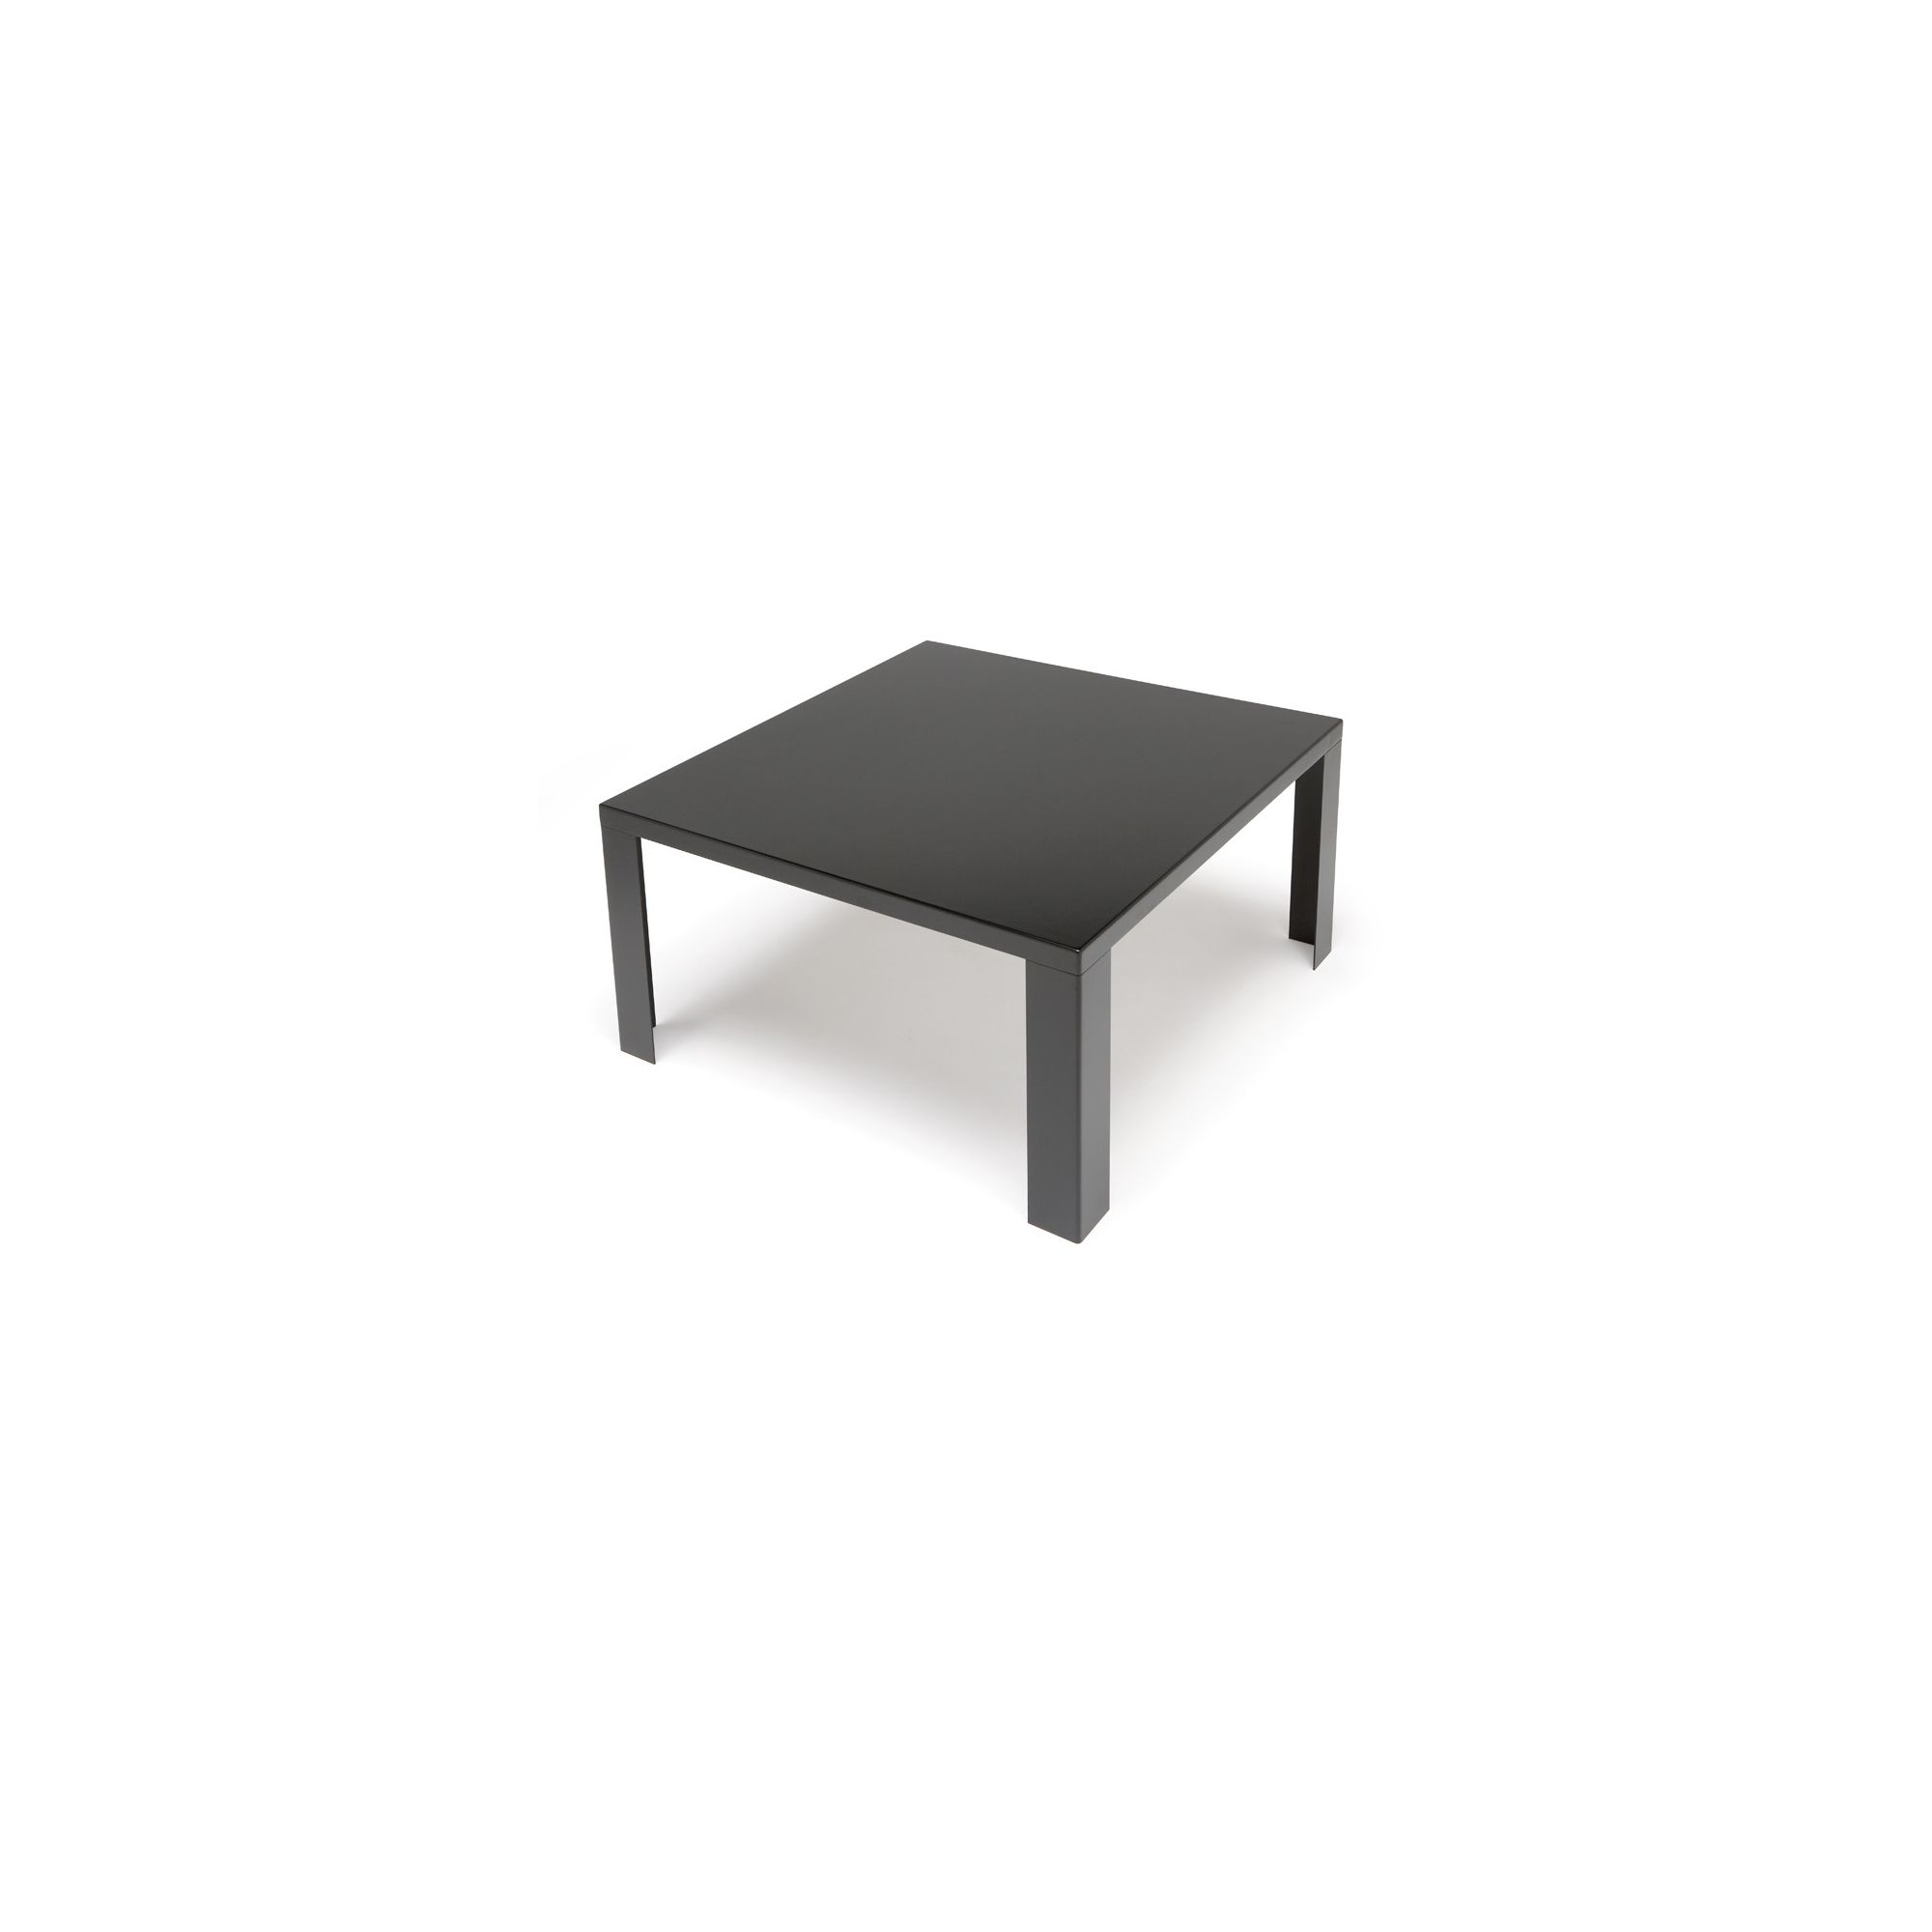 Andreu World Pure Coffee Table - 34cm x 80cm x 80cm - Beige